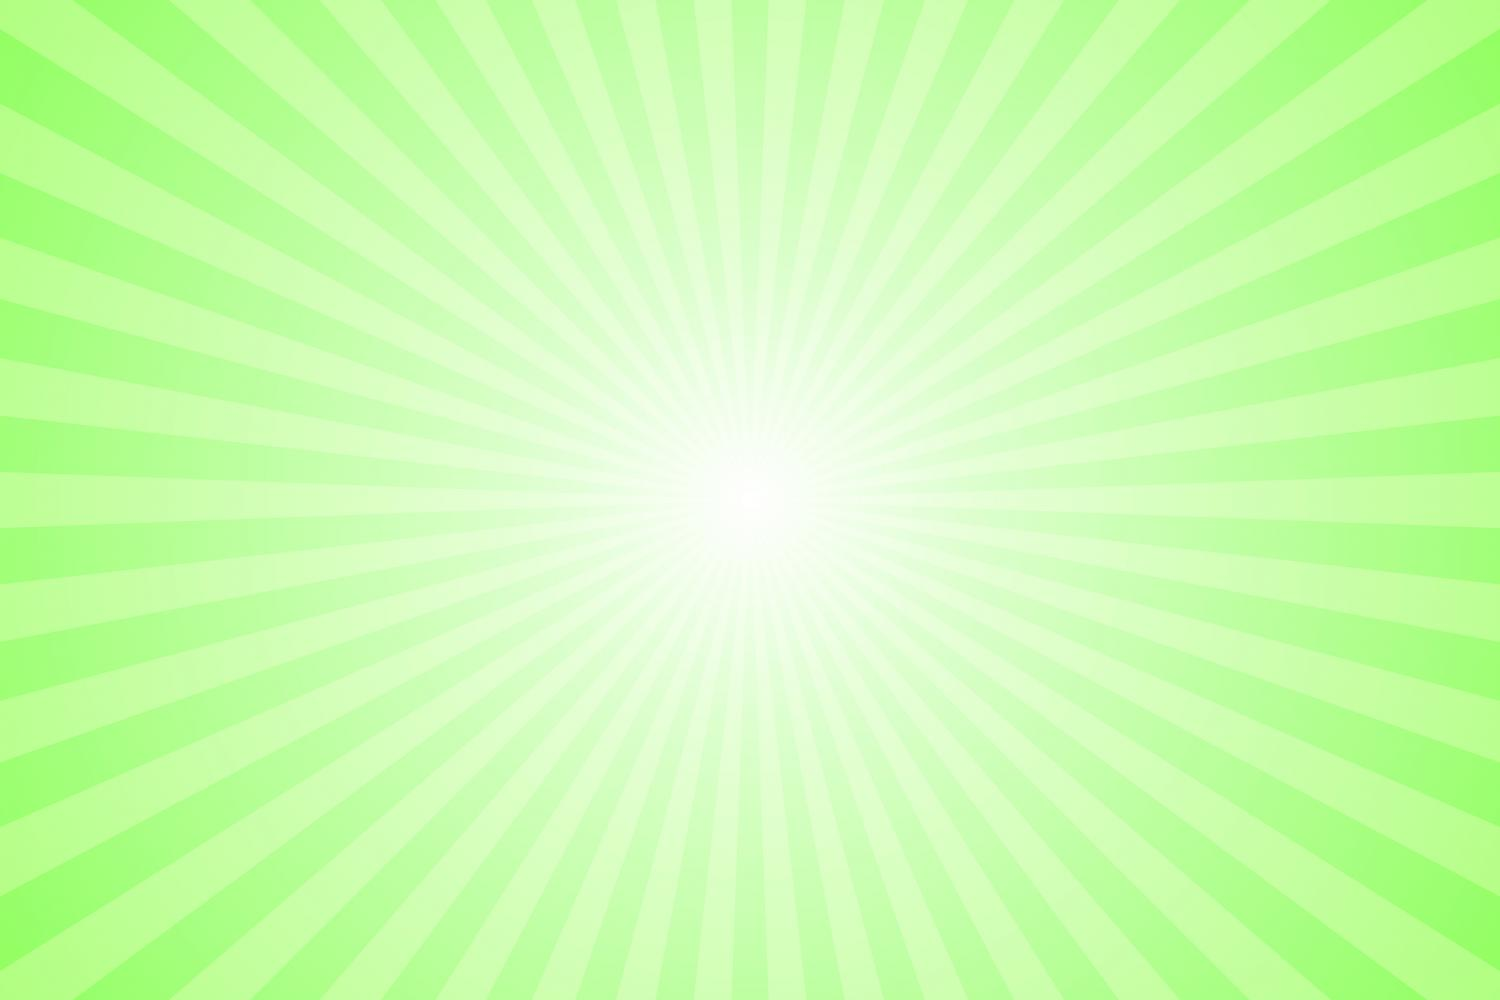 Download Free Light Green Ray Burst Background Graphic By Davidzydd Creative for Cricut Explore, Silhouette and other cutting machines.